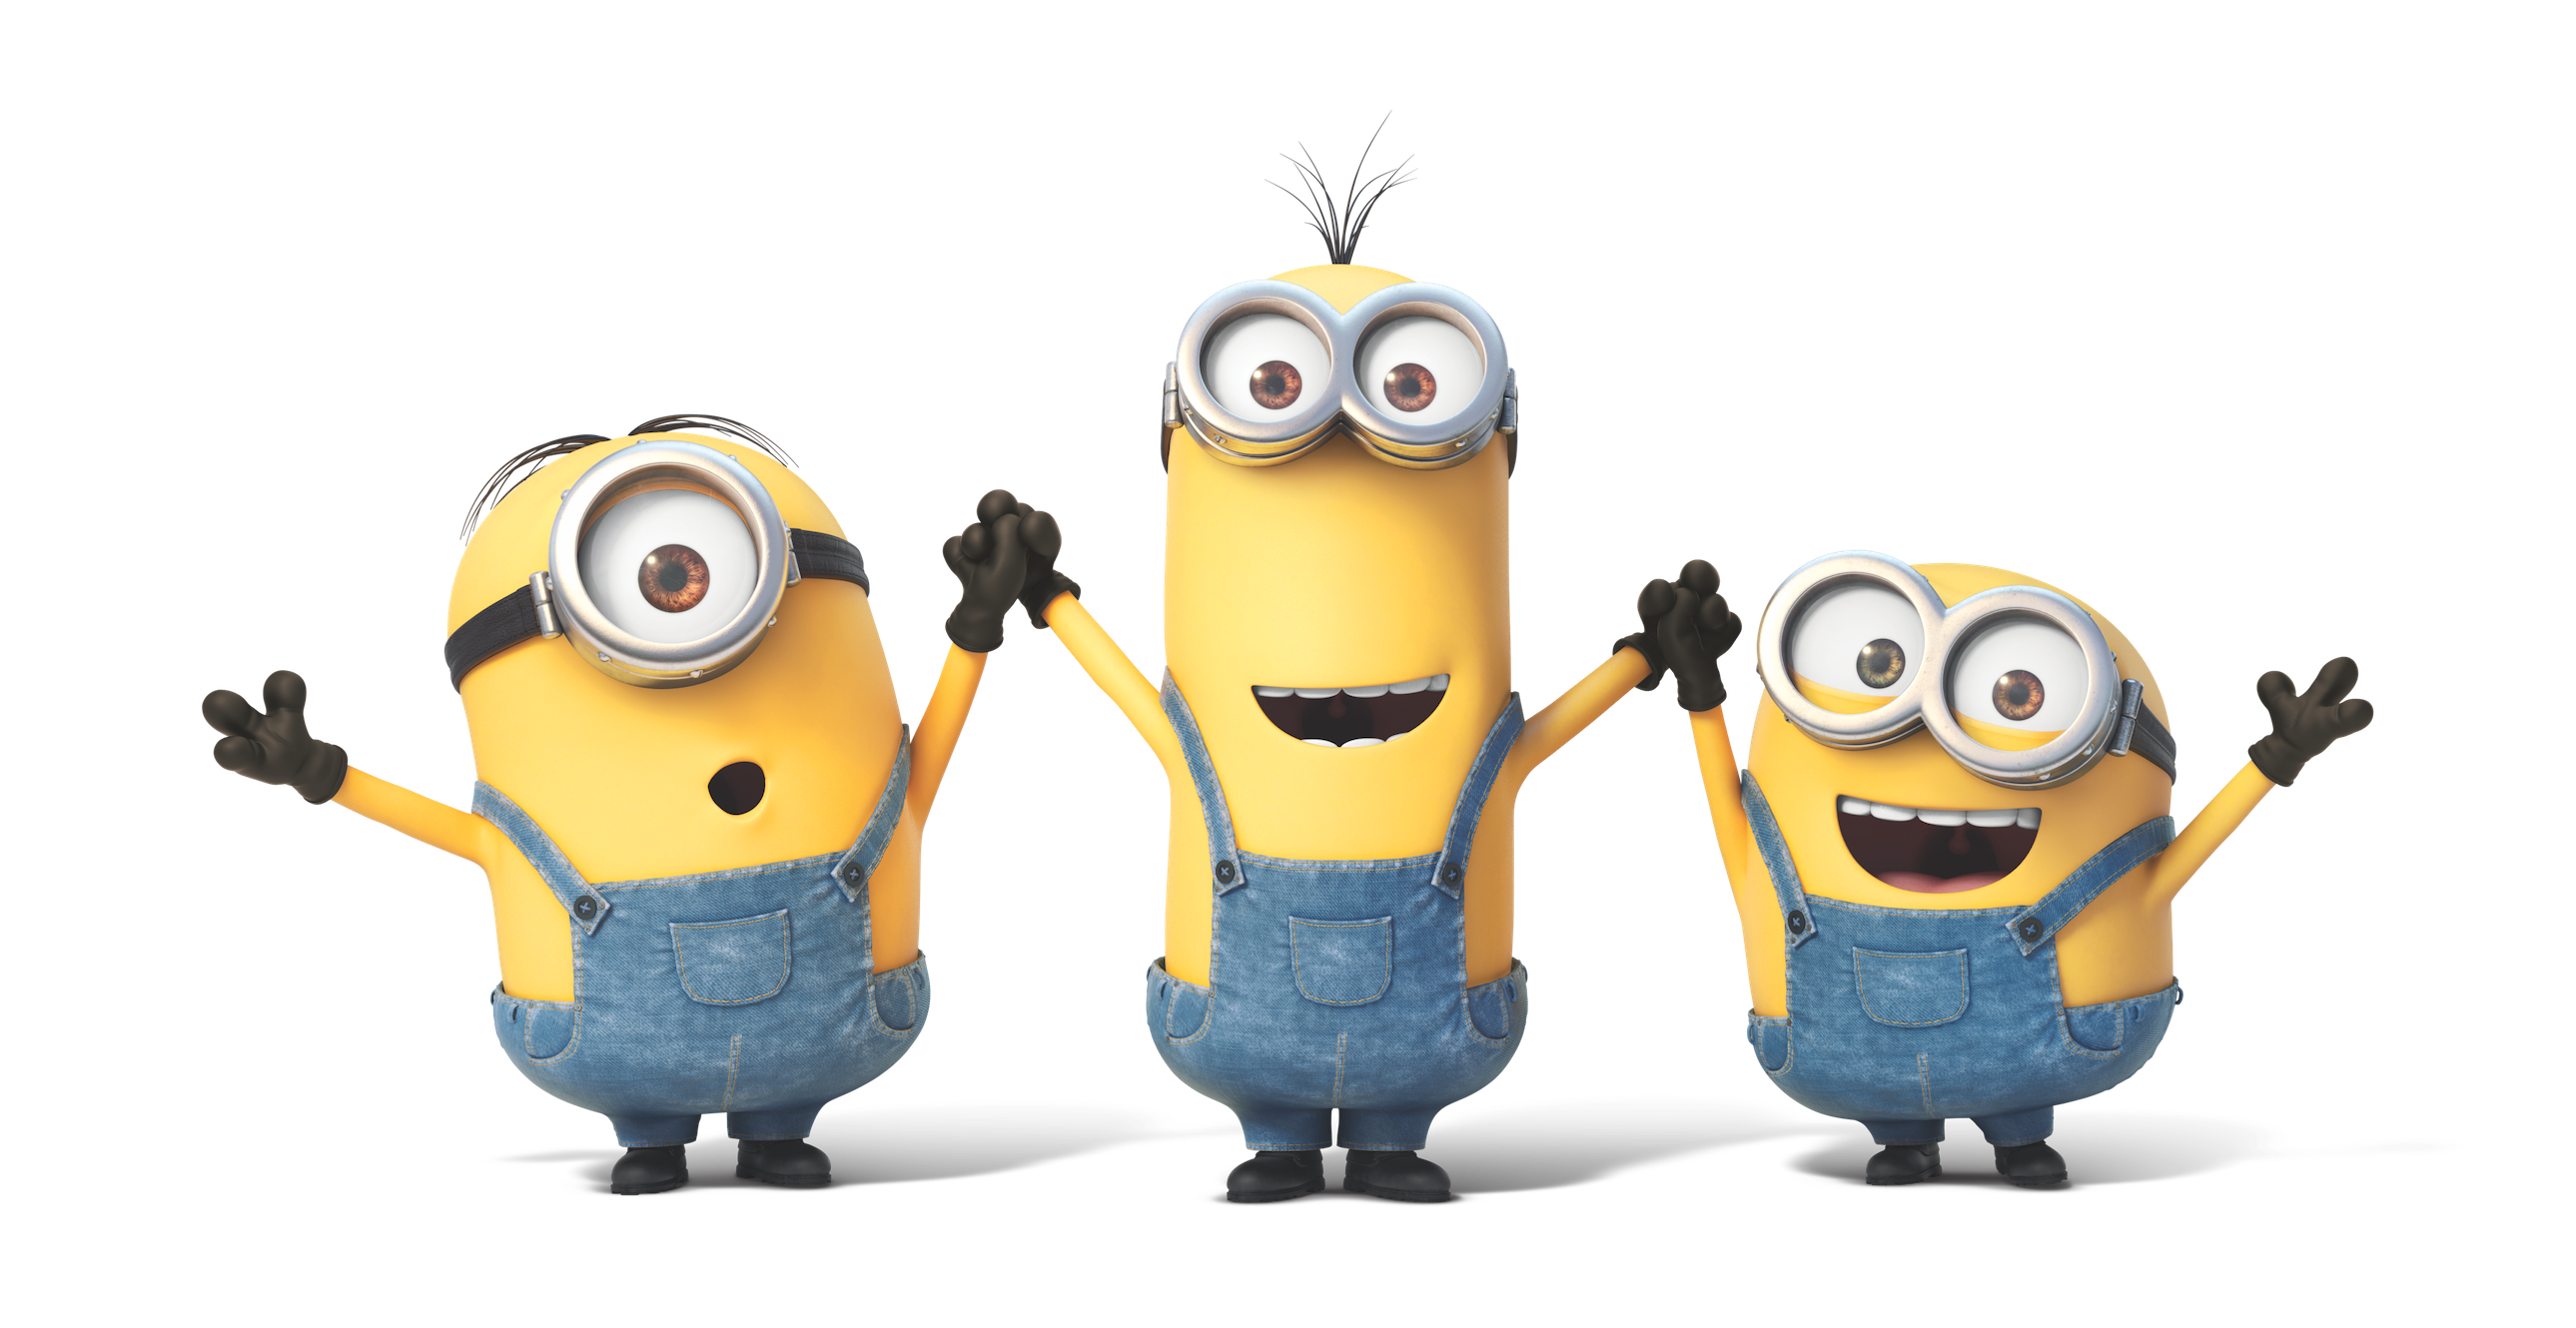 minions png keep kids cwintertained during the holidays spice life #9674